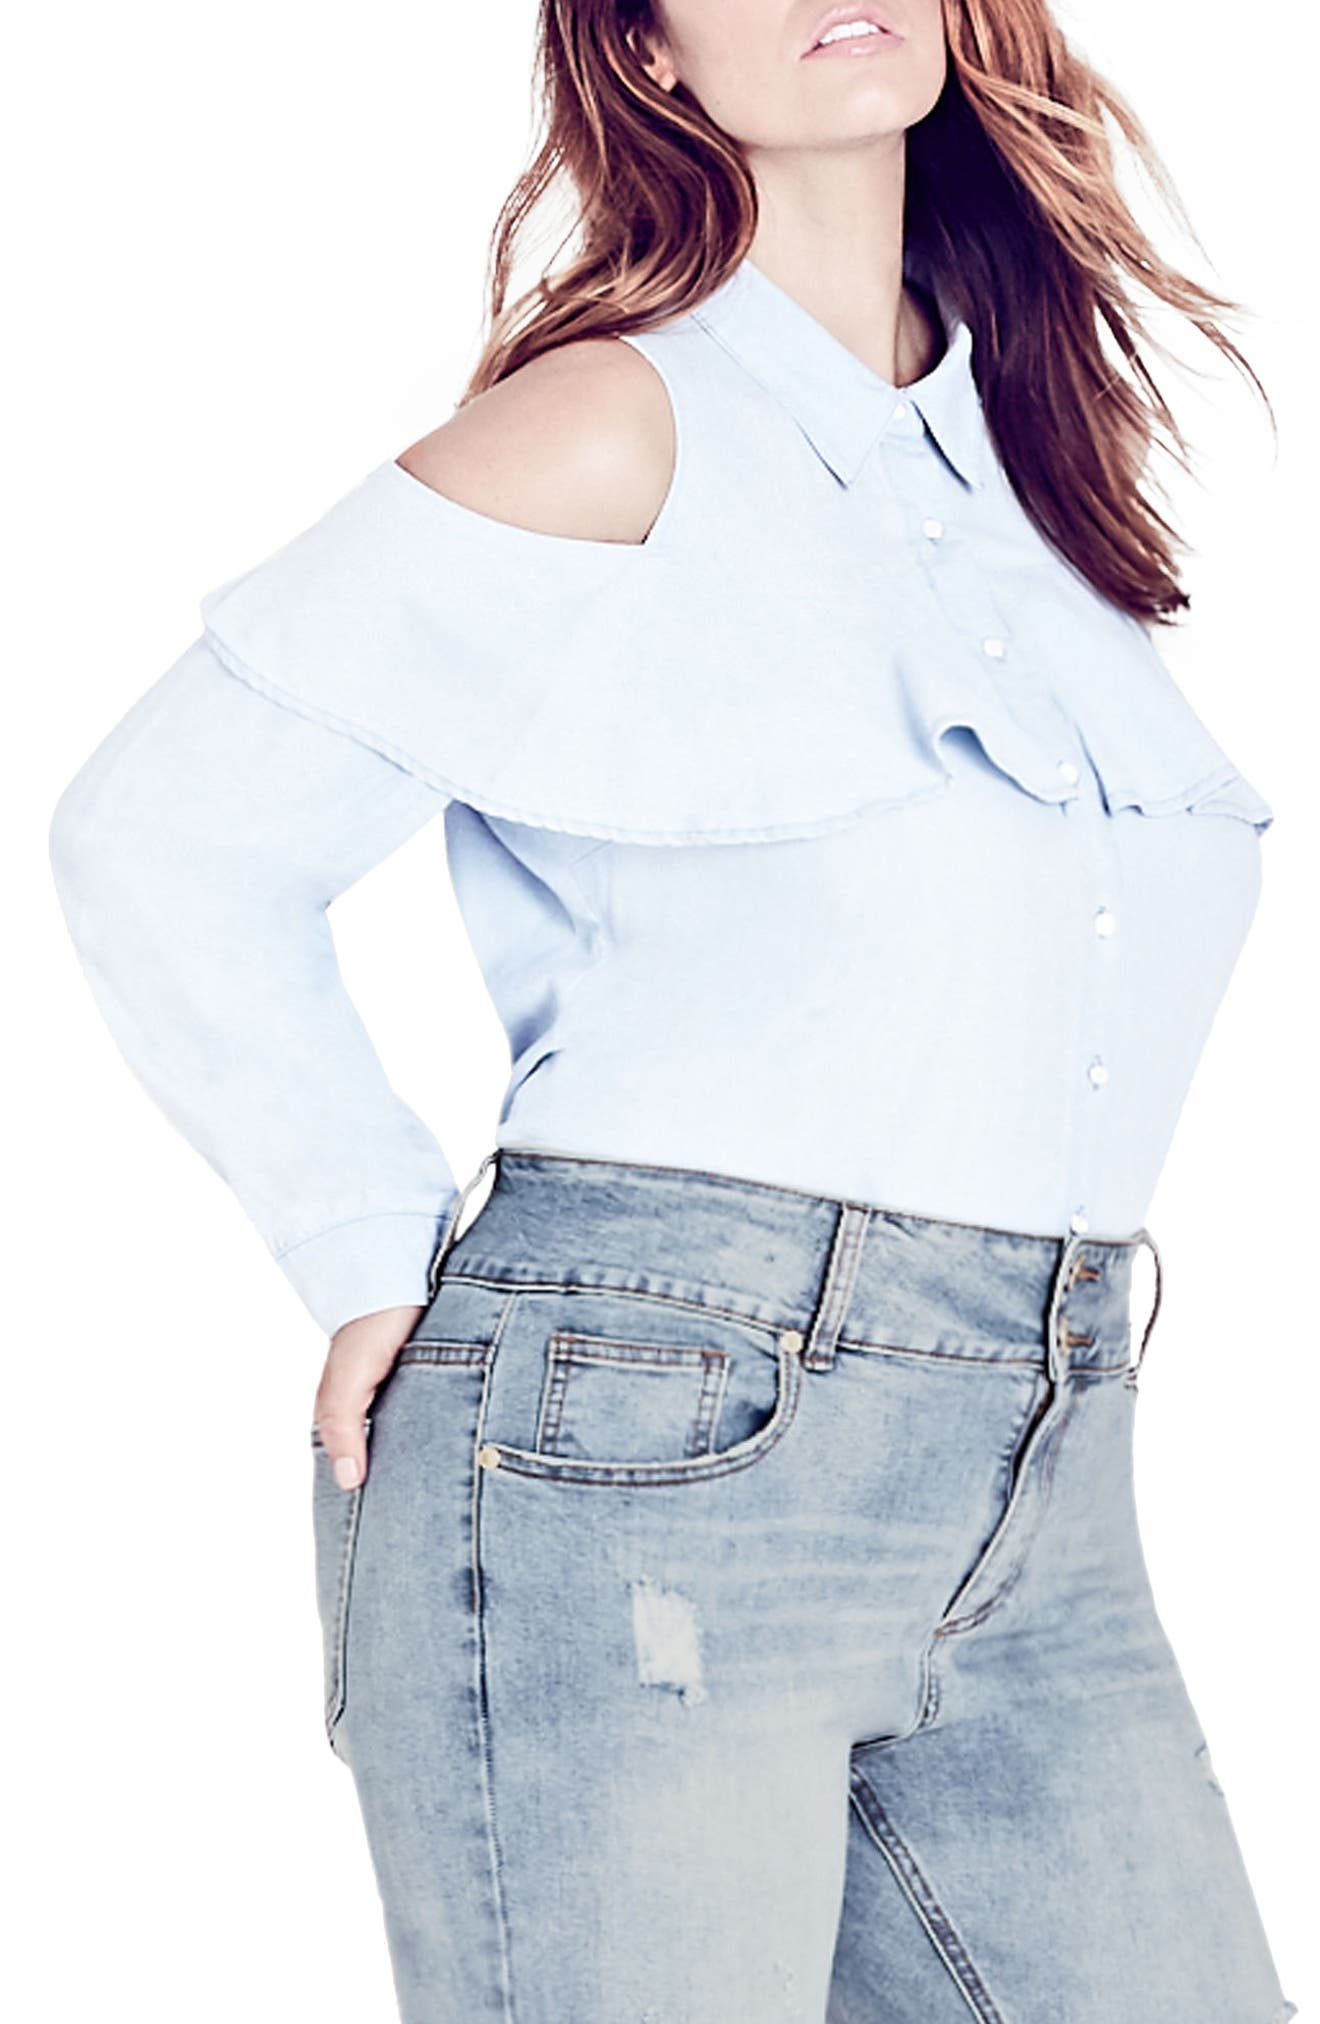 Main Image - City Chic Denim Frill Shirt (Plus Size)